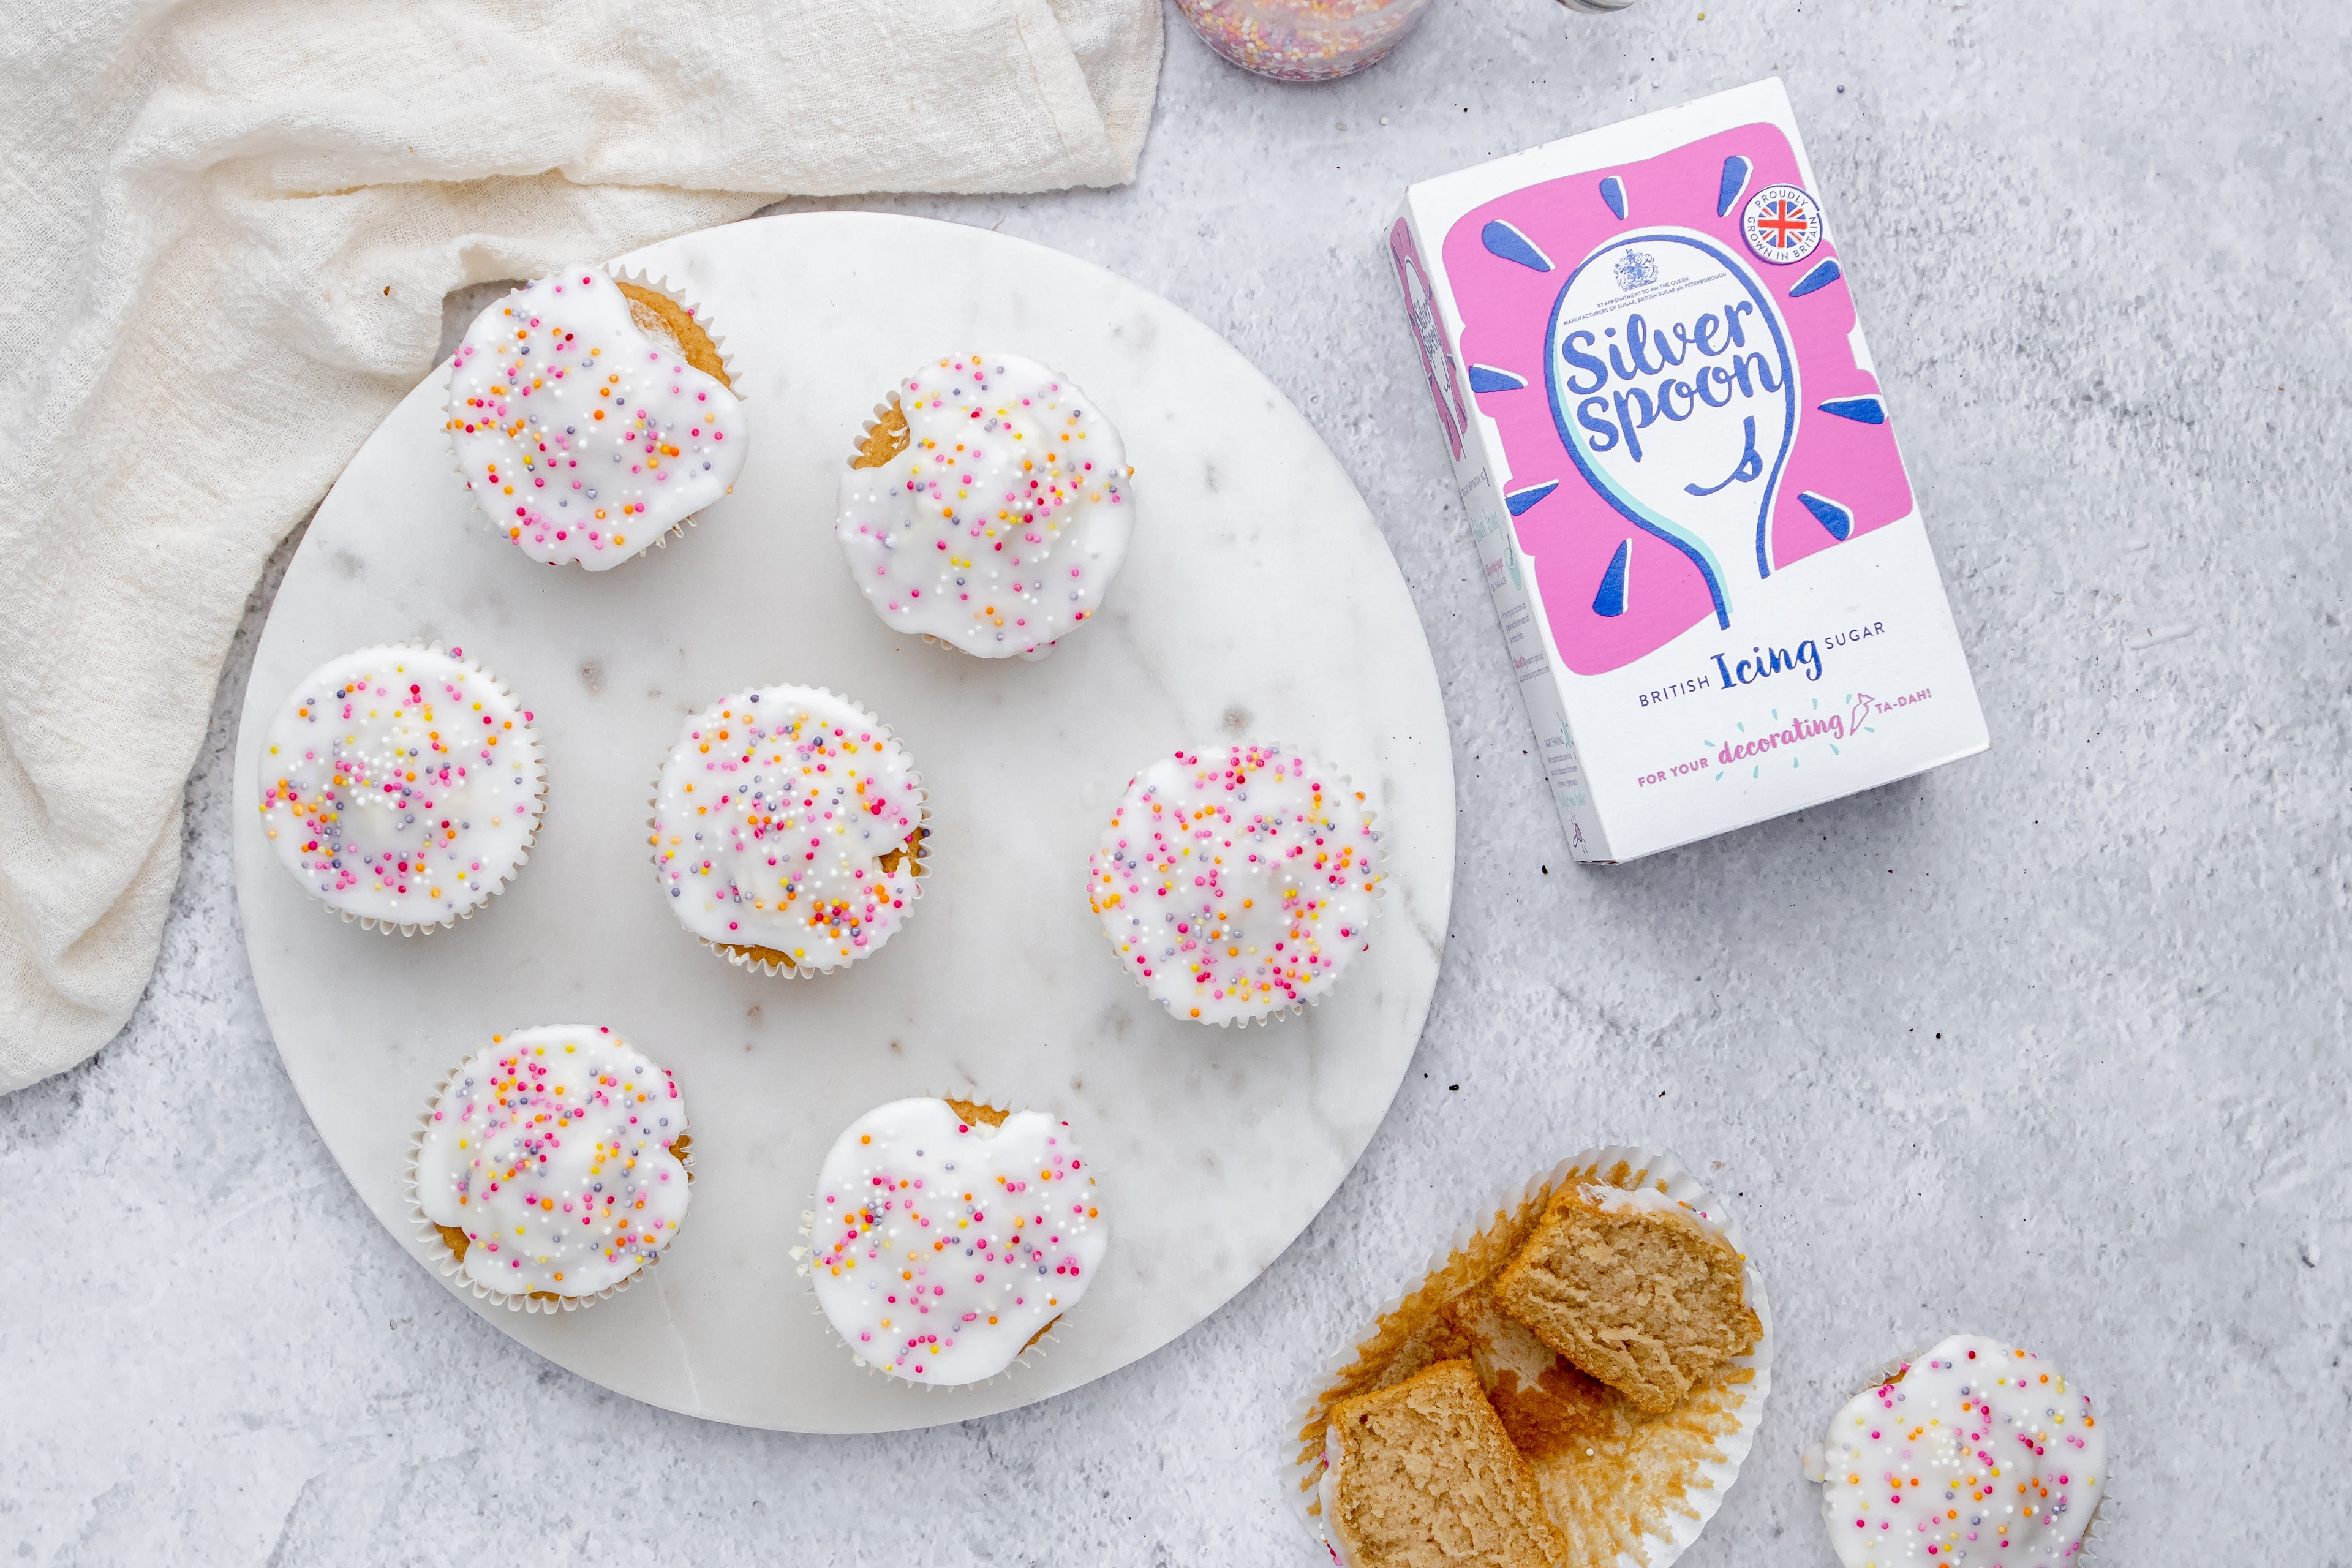 Simple Fairy Cakes on a plate next to a box of Silver Spoon Icing Sugar, and a sliced cupcake in a cupcake case